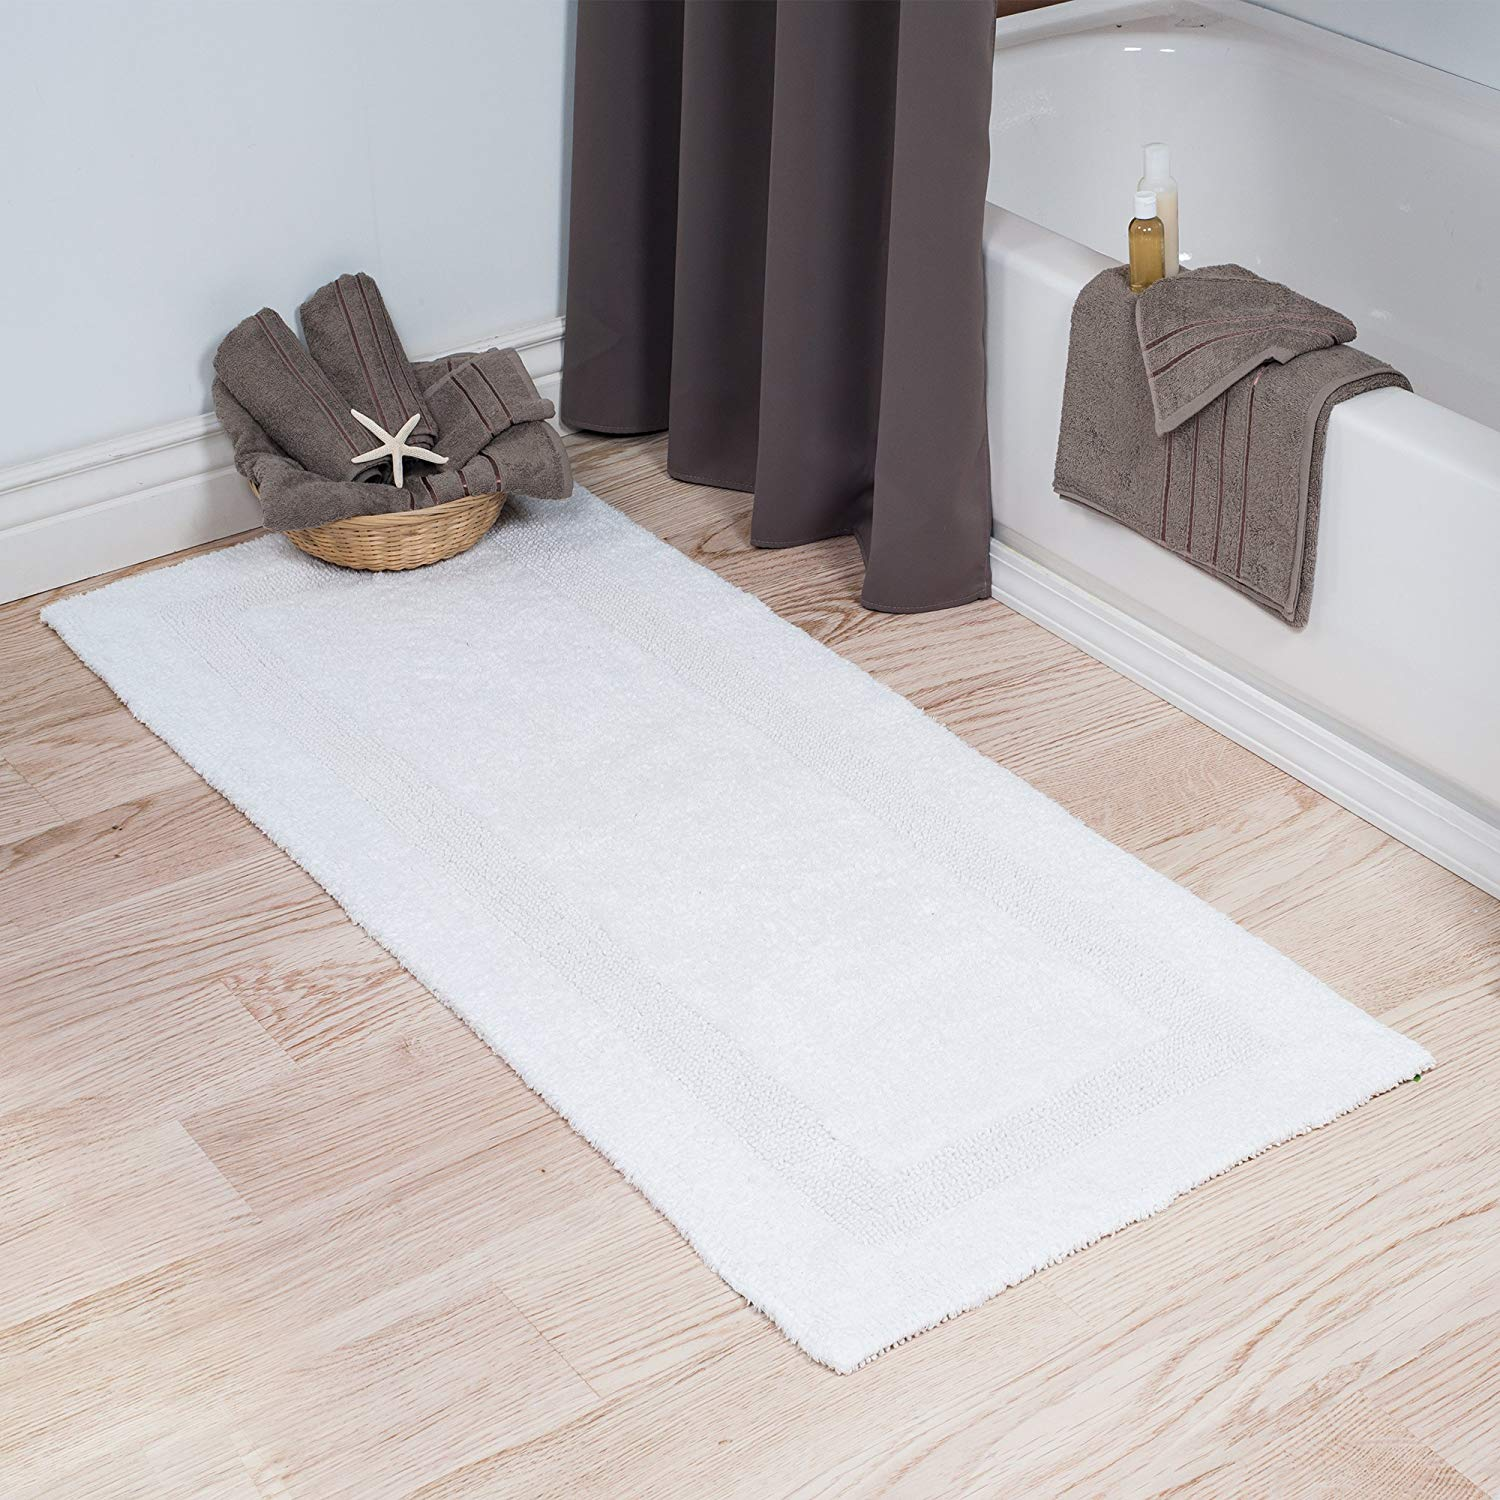 bath rug amazon.com: lavish home cotton bath mat- plush 100 percent cotton 24x60  long BTAREOQ